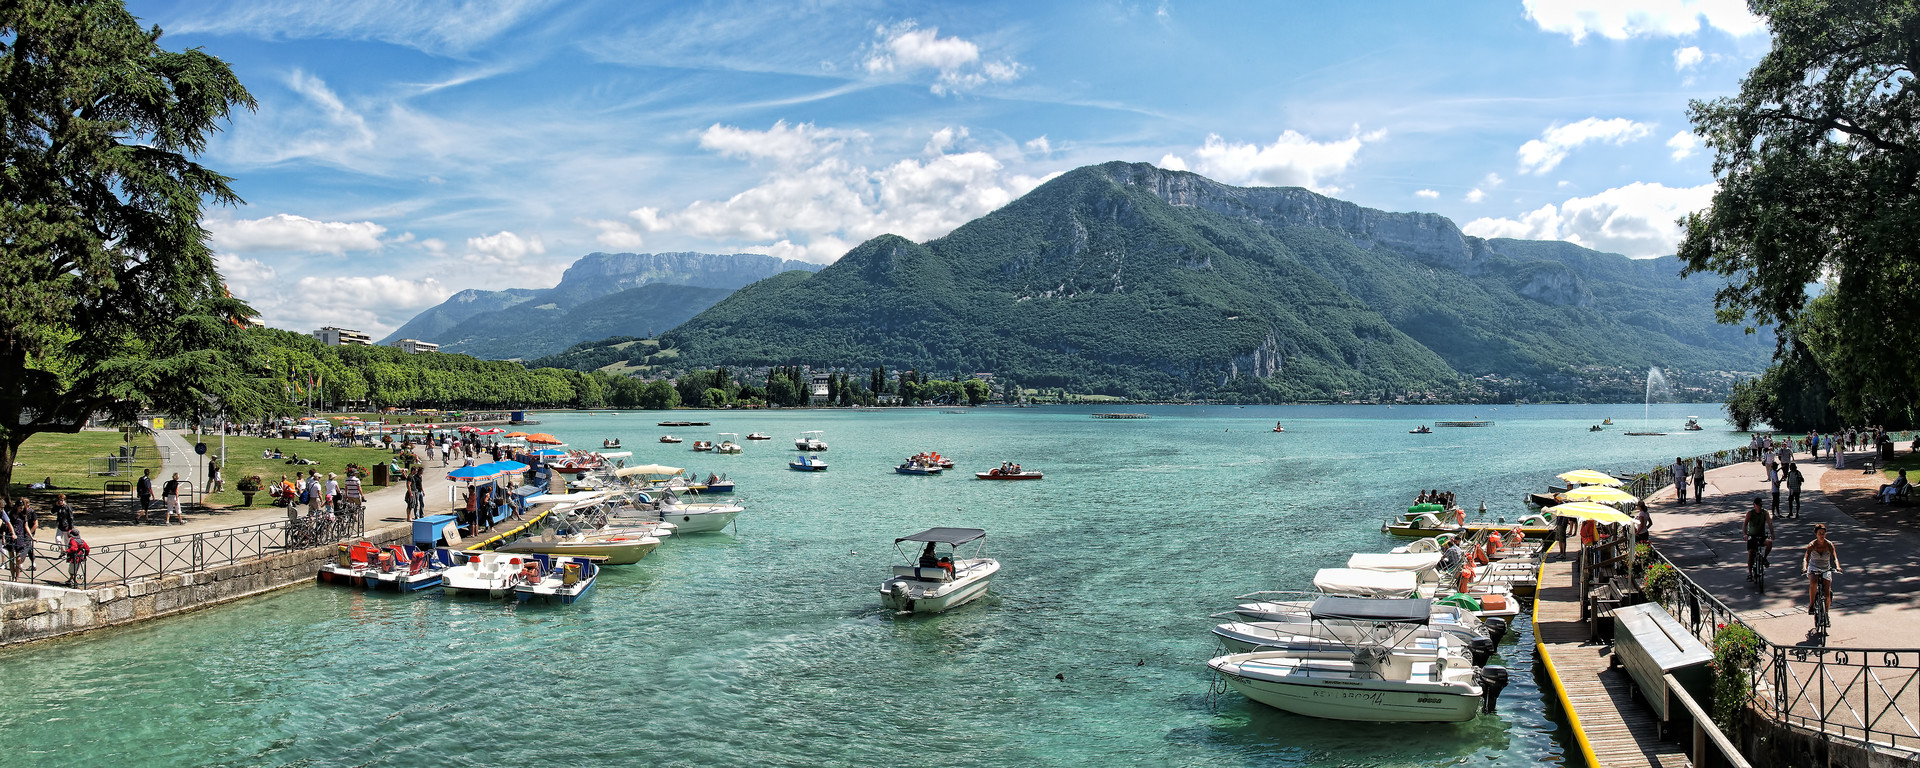 Experience in Annecy, France by Margaux